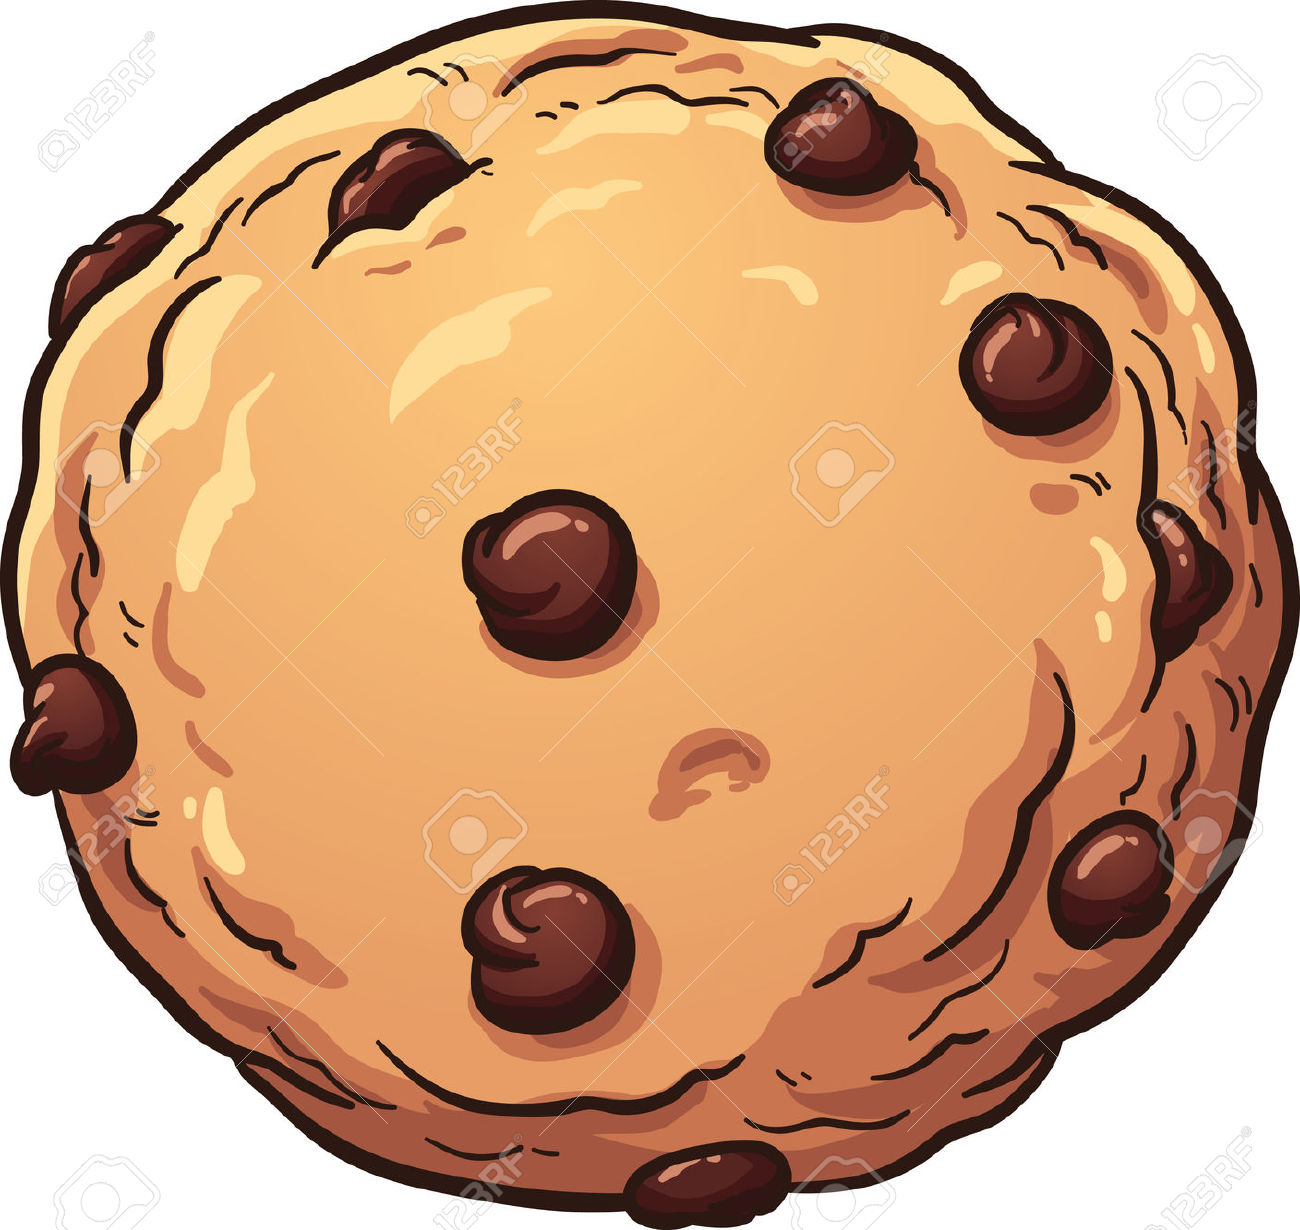 Chocolate chip cookie number one clipart - ClipartFest